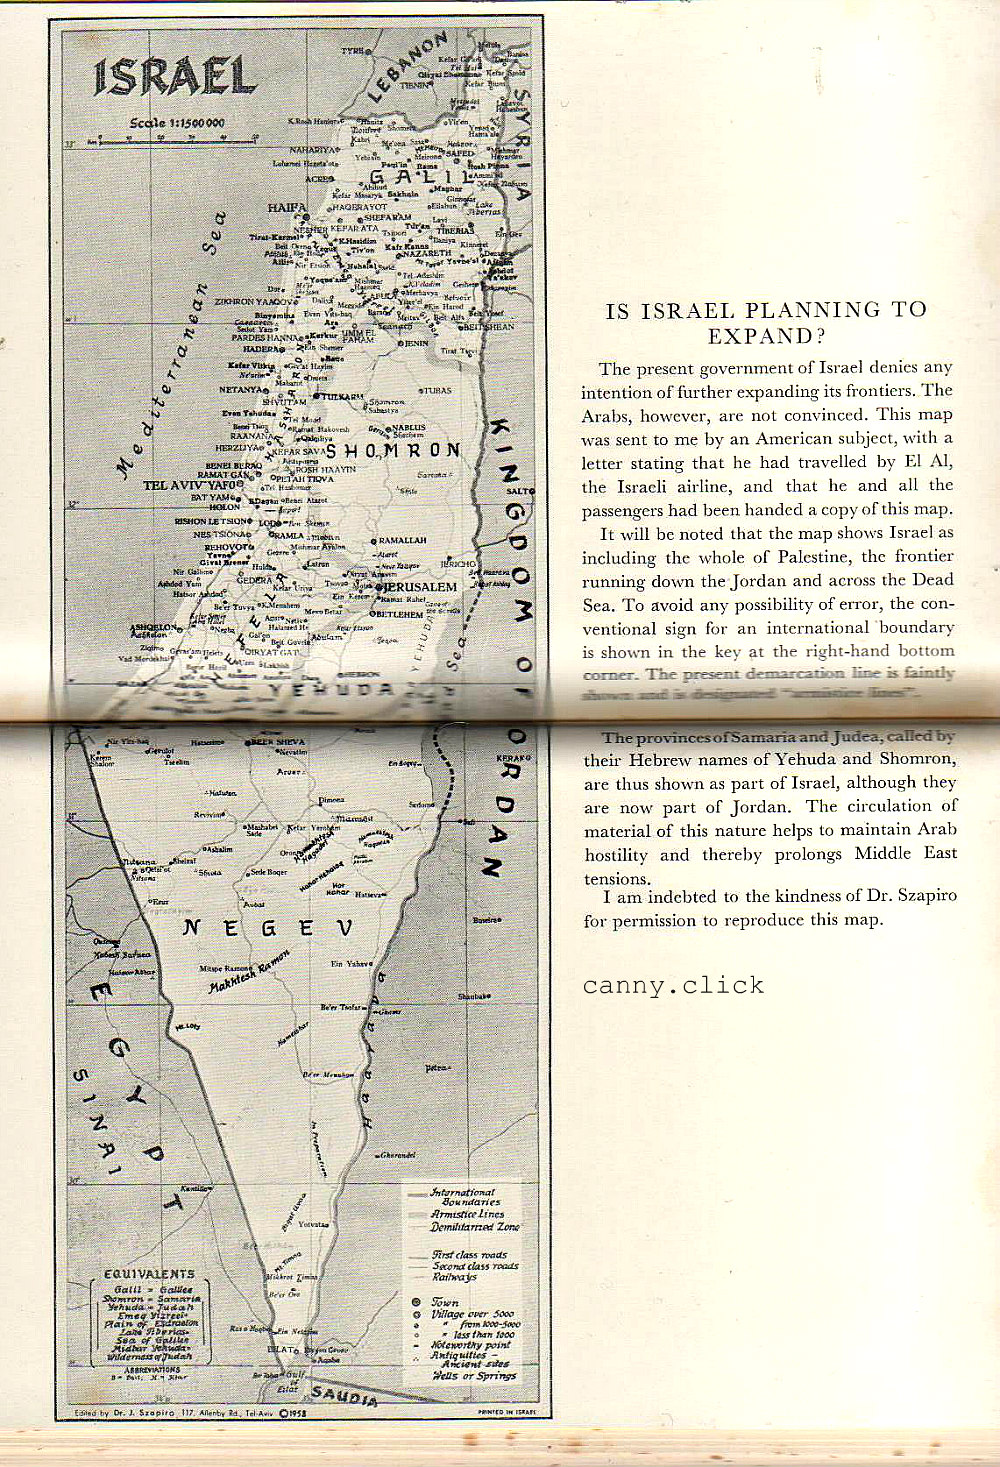 El Al map of Israel, 1958